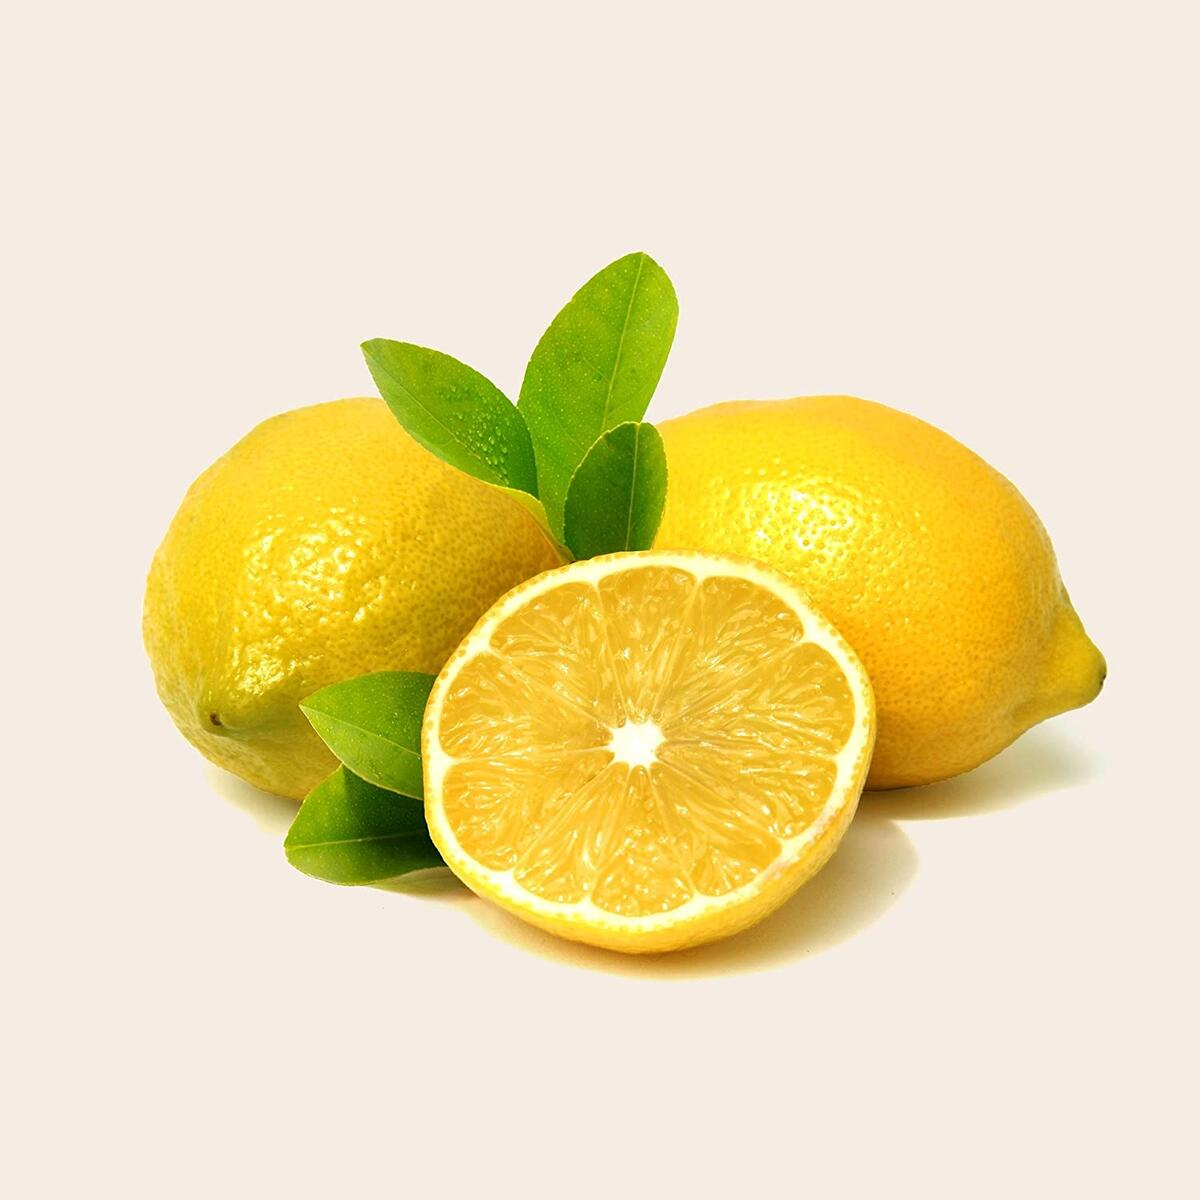 Lemon Essential Oil (15 ml) by Pure Organic Ingredients, Convenient Dropper Cap Bottle, Uplifting & Energizing Citrus Aroma, Powerful Cleansing Agent, Natural Detox